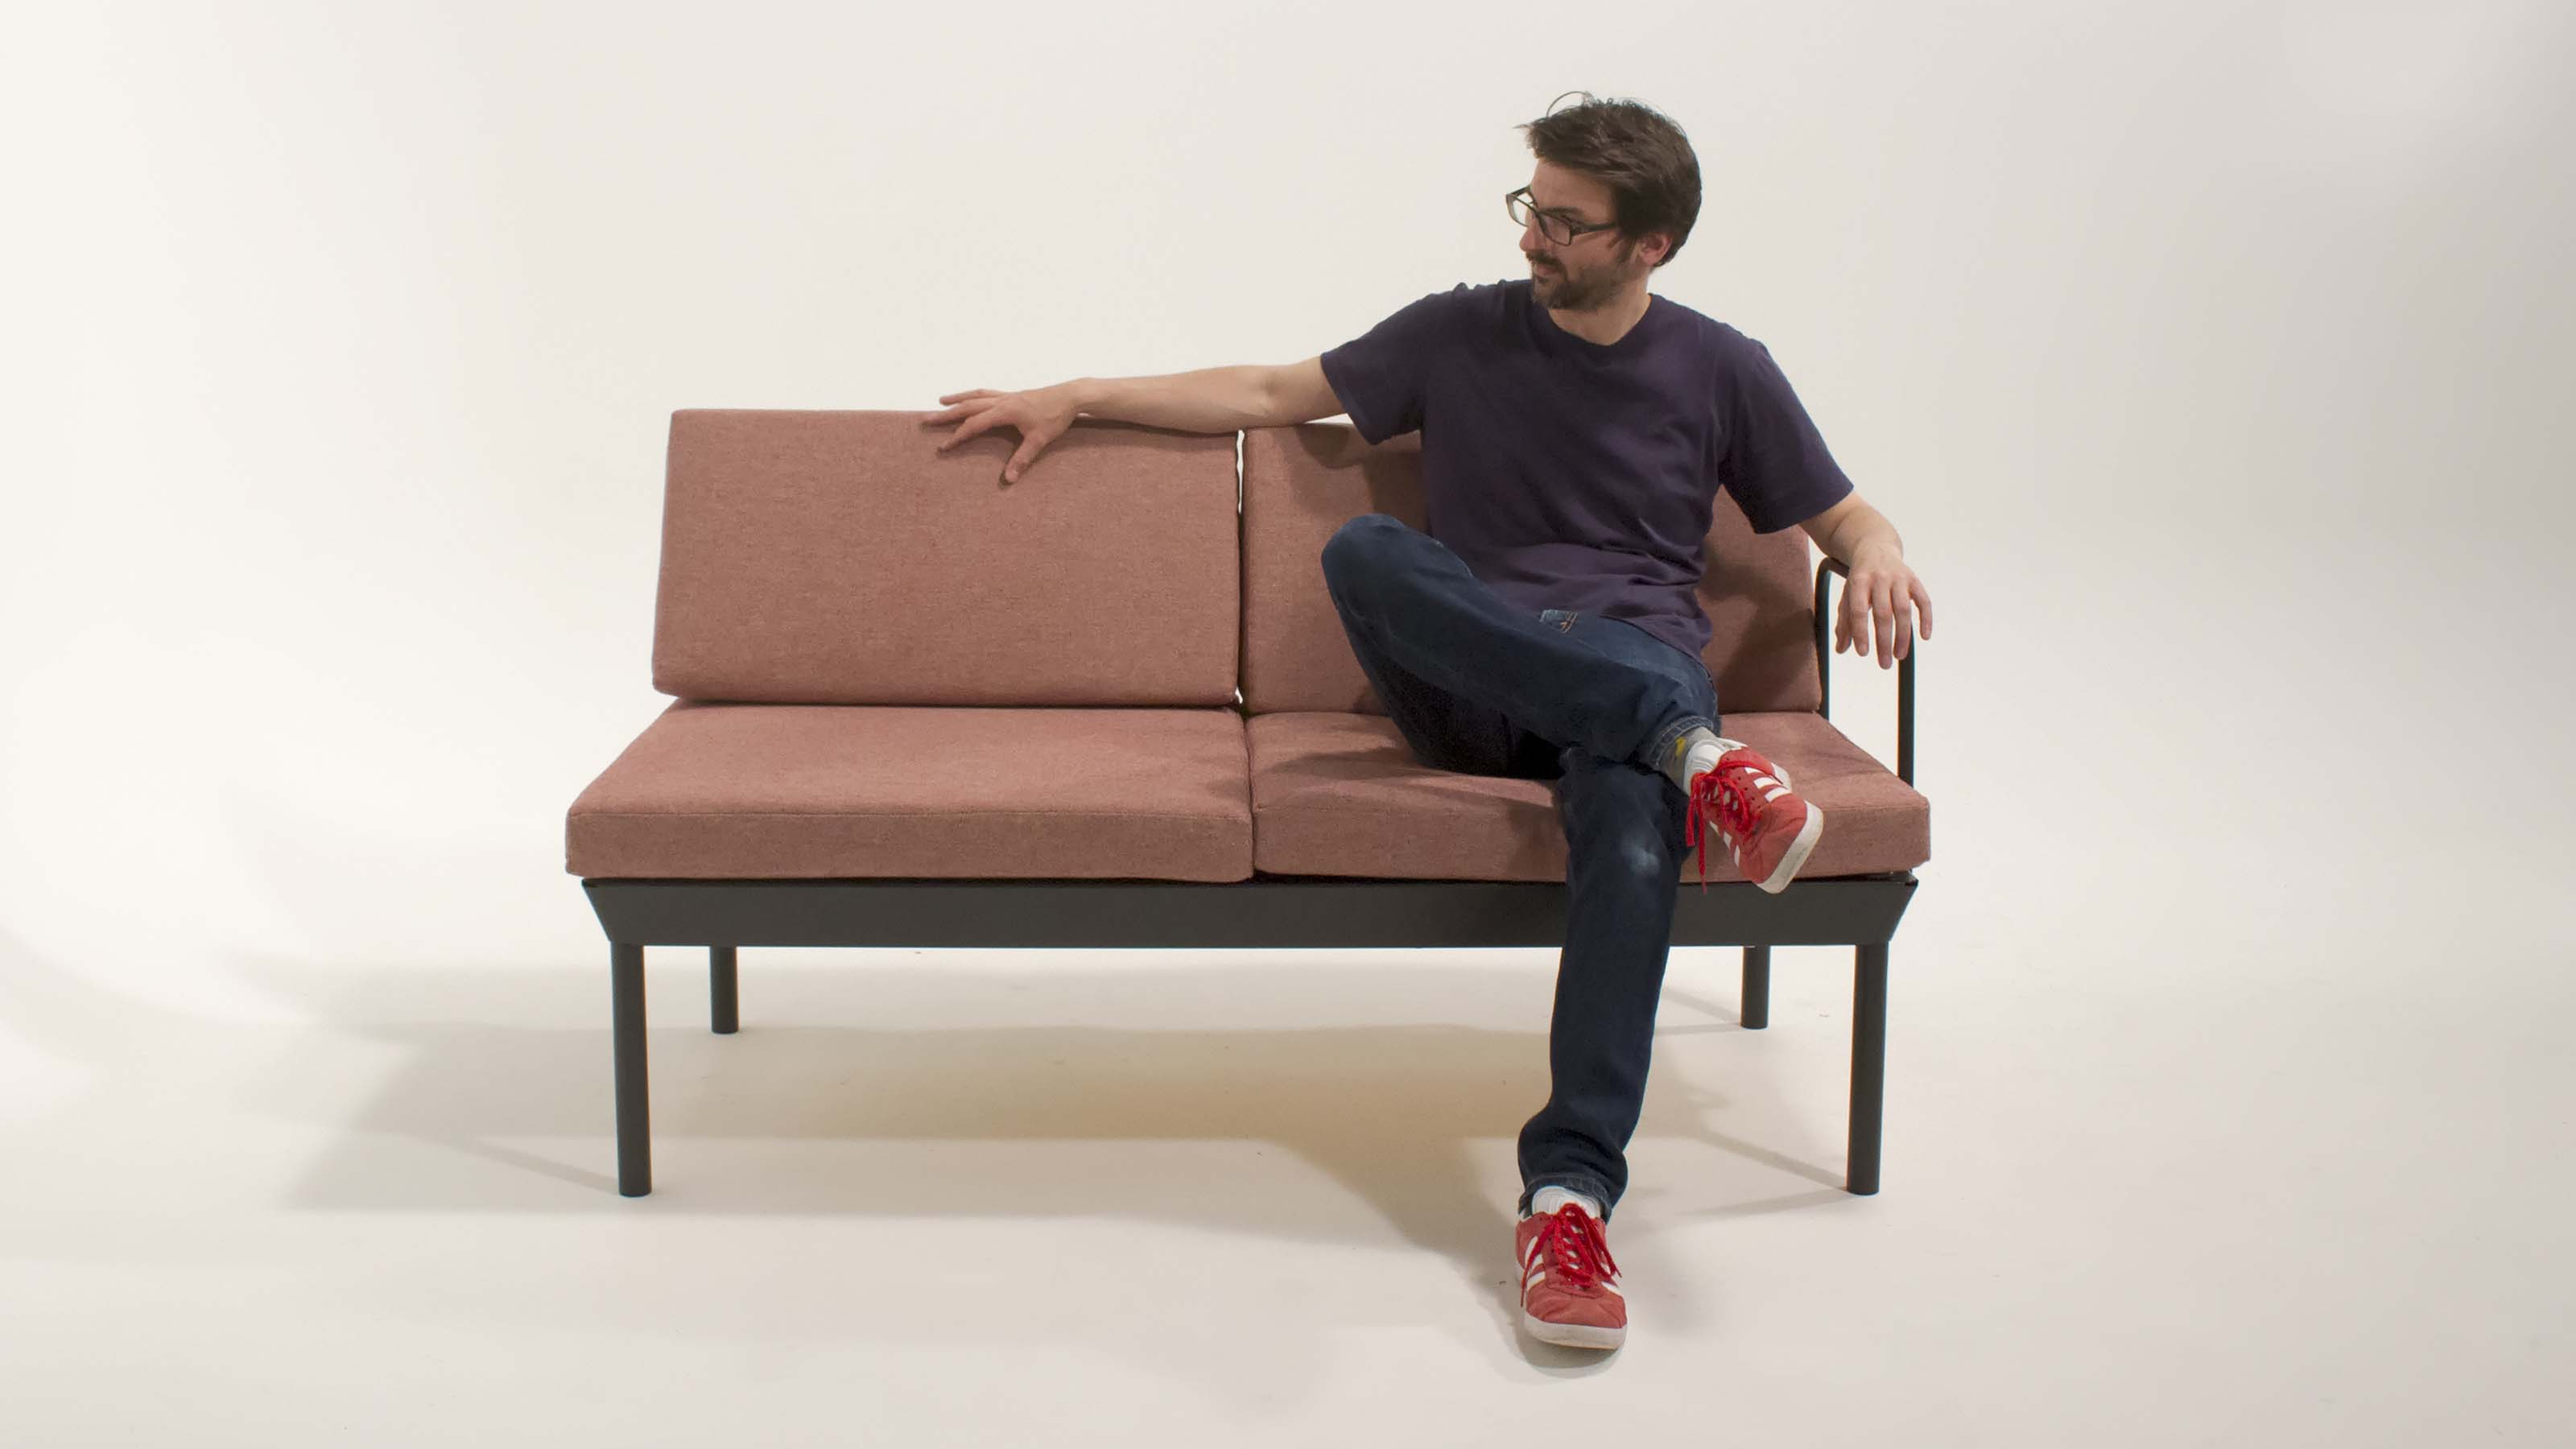 Steven and the sustainable couch